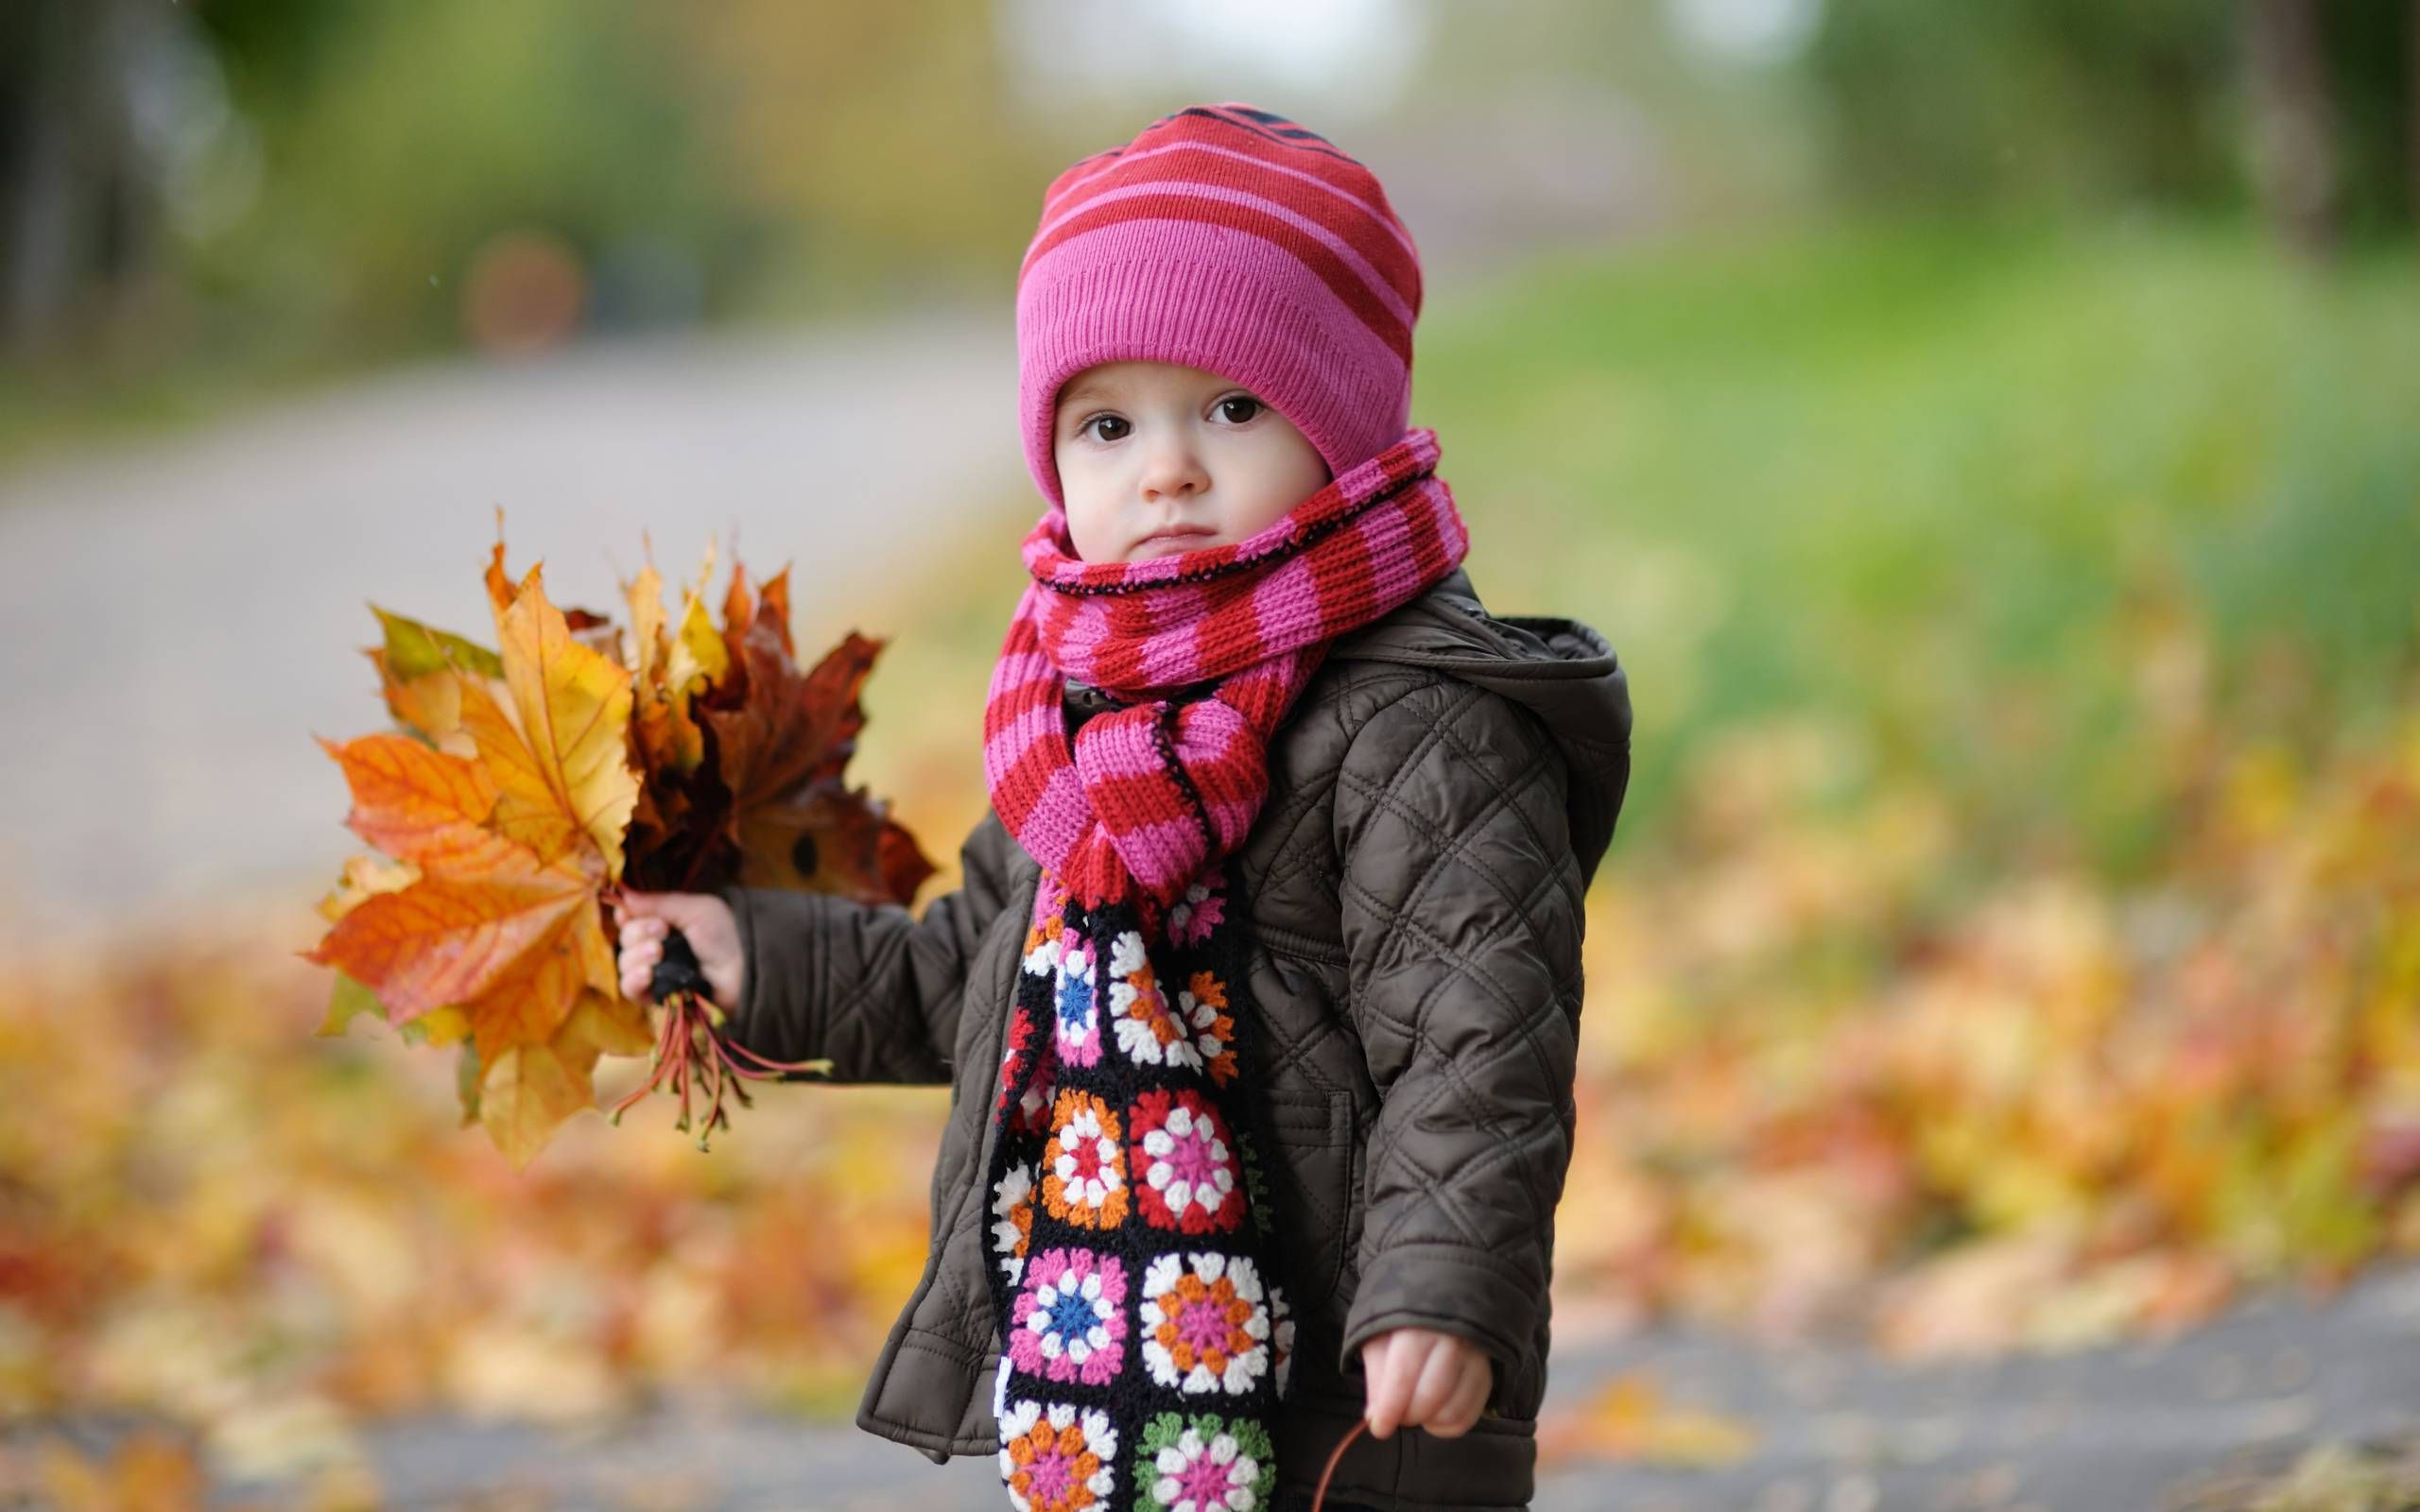 Cute Baby Looking Around Wallpaper In Hd Http Wallpaper Com Co 1110312 Cute Baby Looking Around Wa Cute Baby Wallpaper Baby Girl Wallpaper Cute Baby Photos